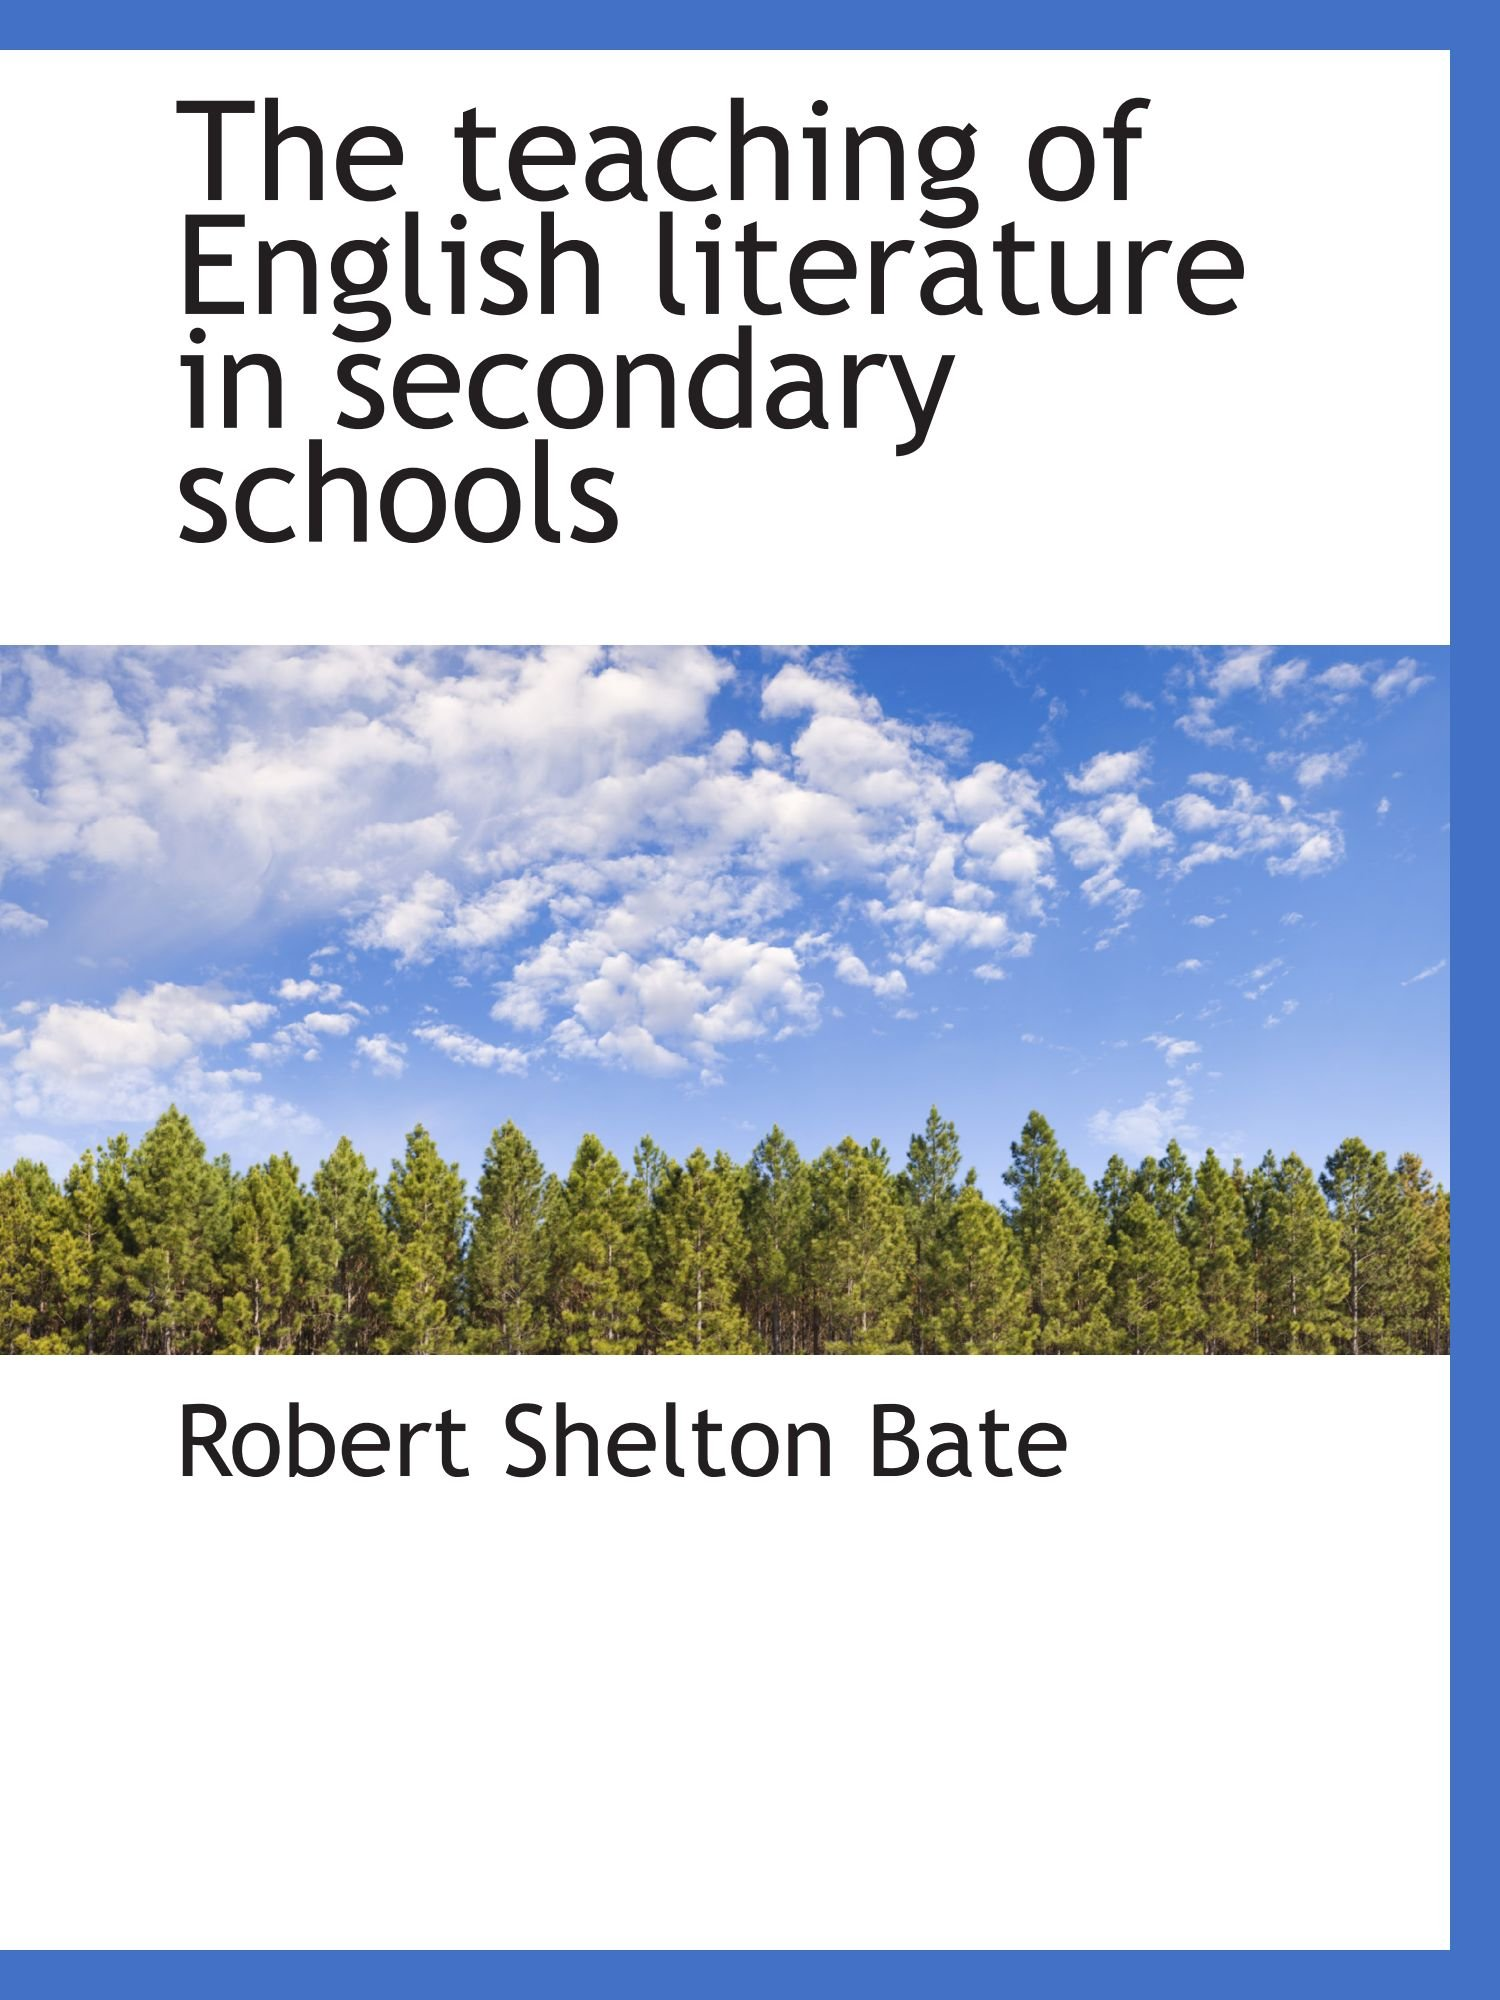 Download The teaching of English literature in secondary schools PDF